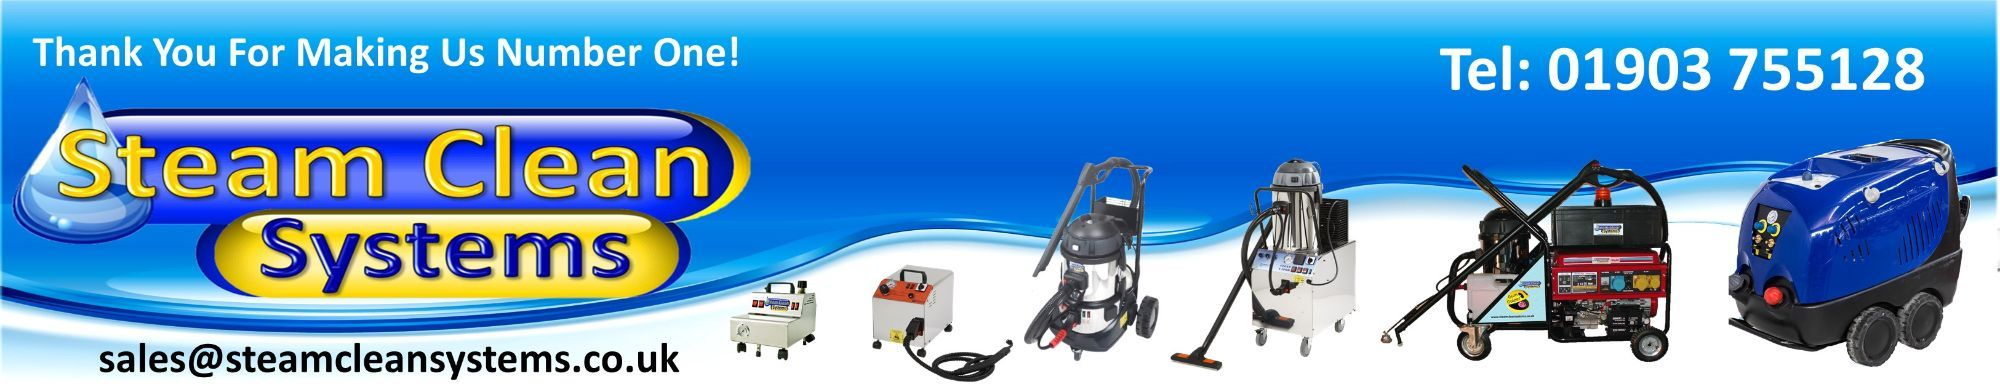 Commercial & Industrial Powerfull Self Descaling Steam Cleaners